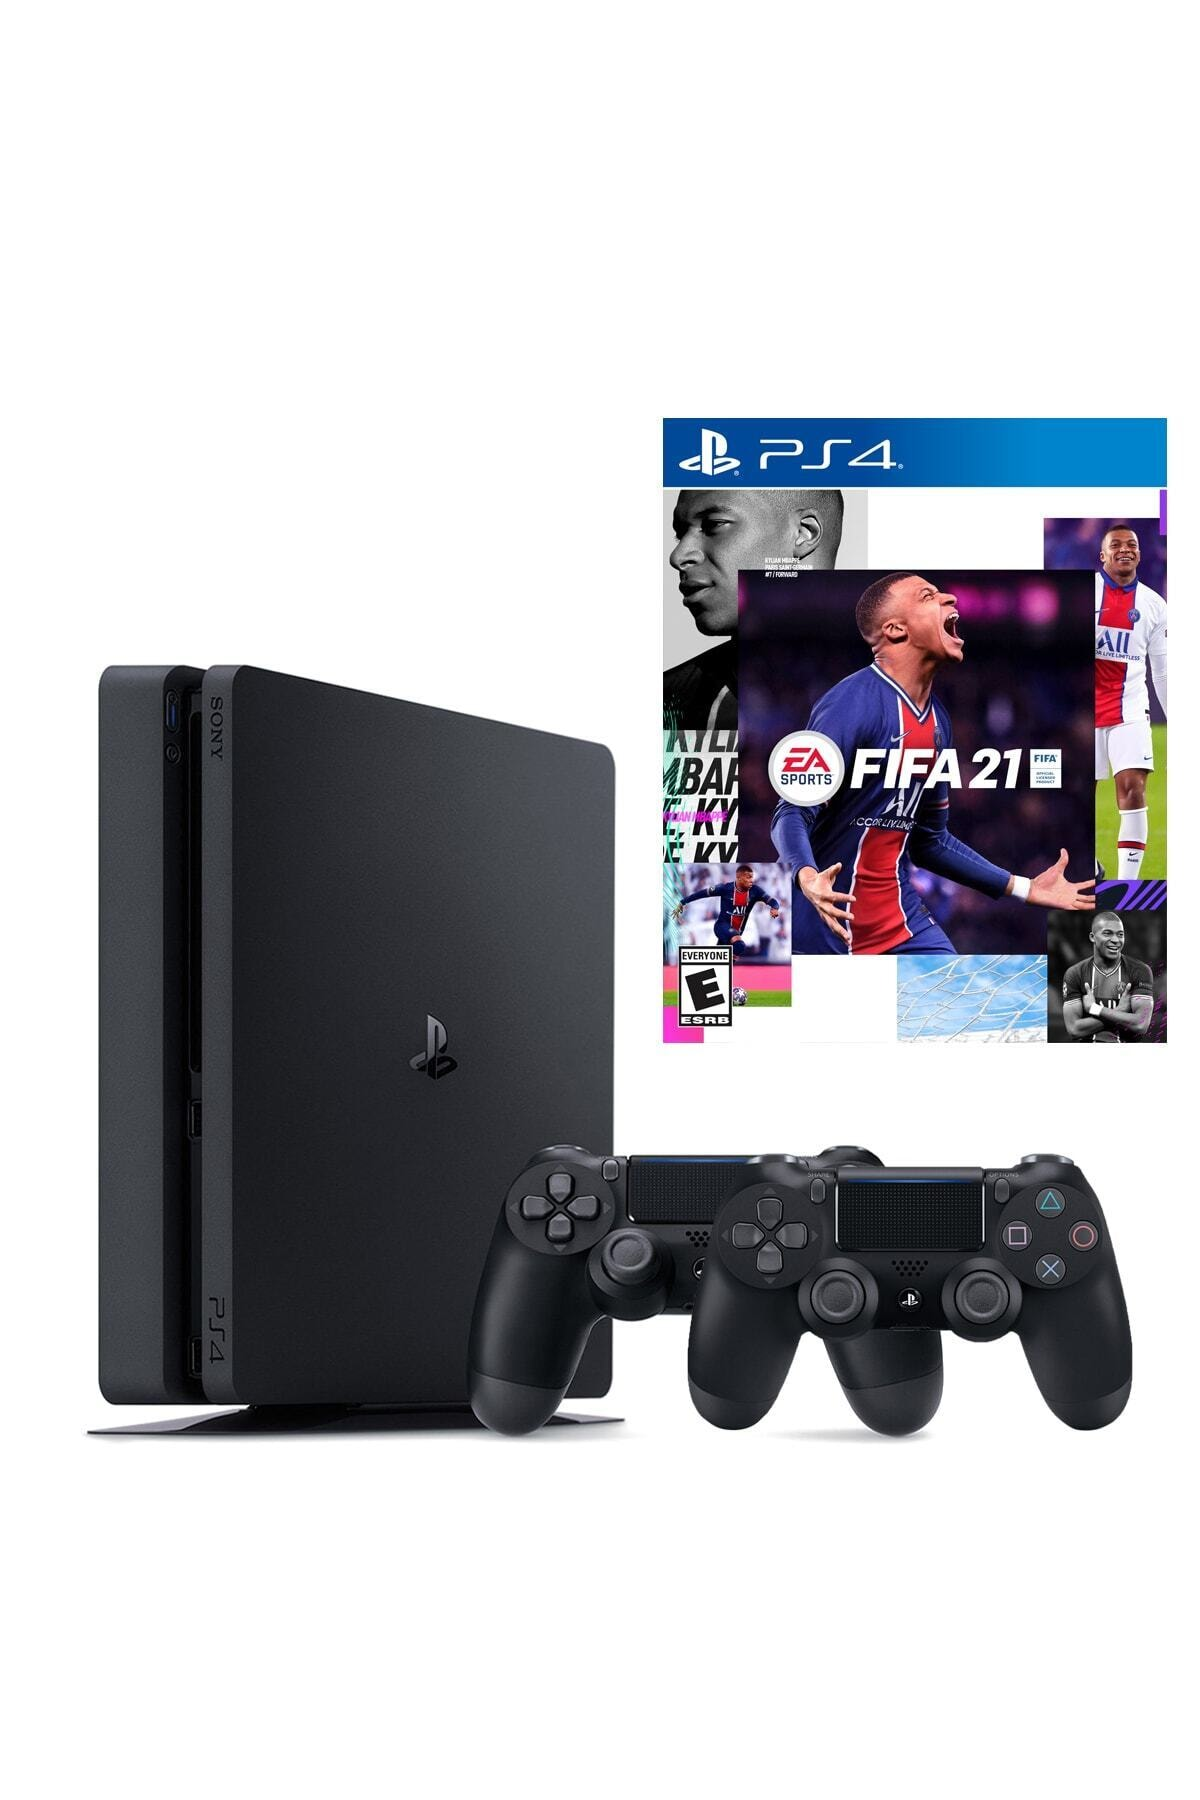 Sony Playstation 4 Slim 1 Tb + 2. Ps4 Kol + Ps4 Fifa 2021 1